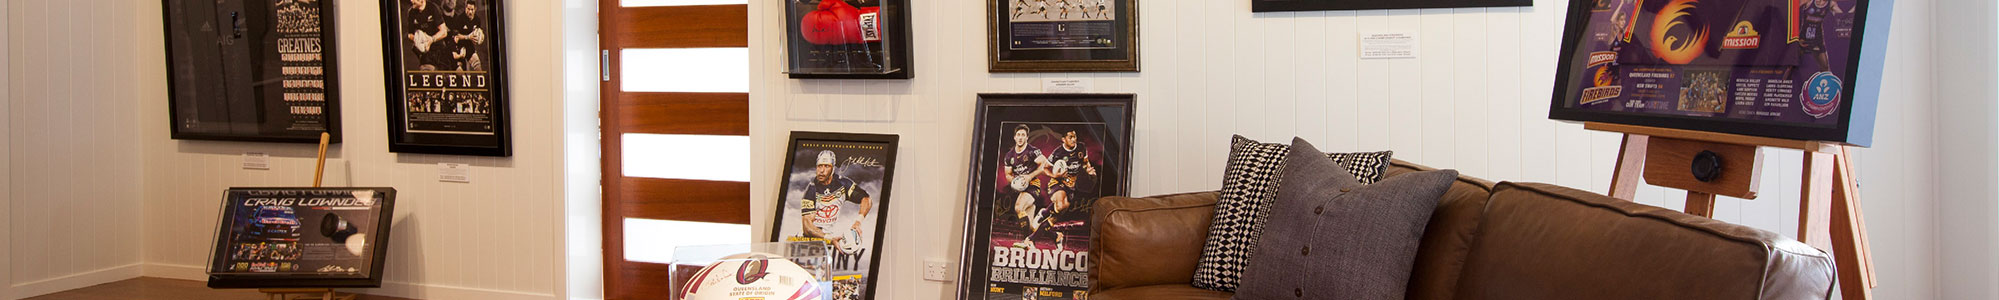 Sporting Memorabilia Framing